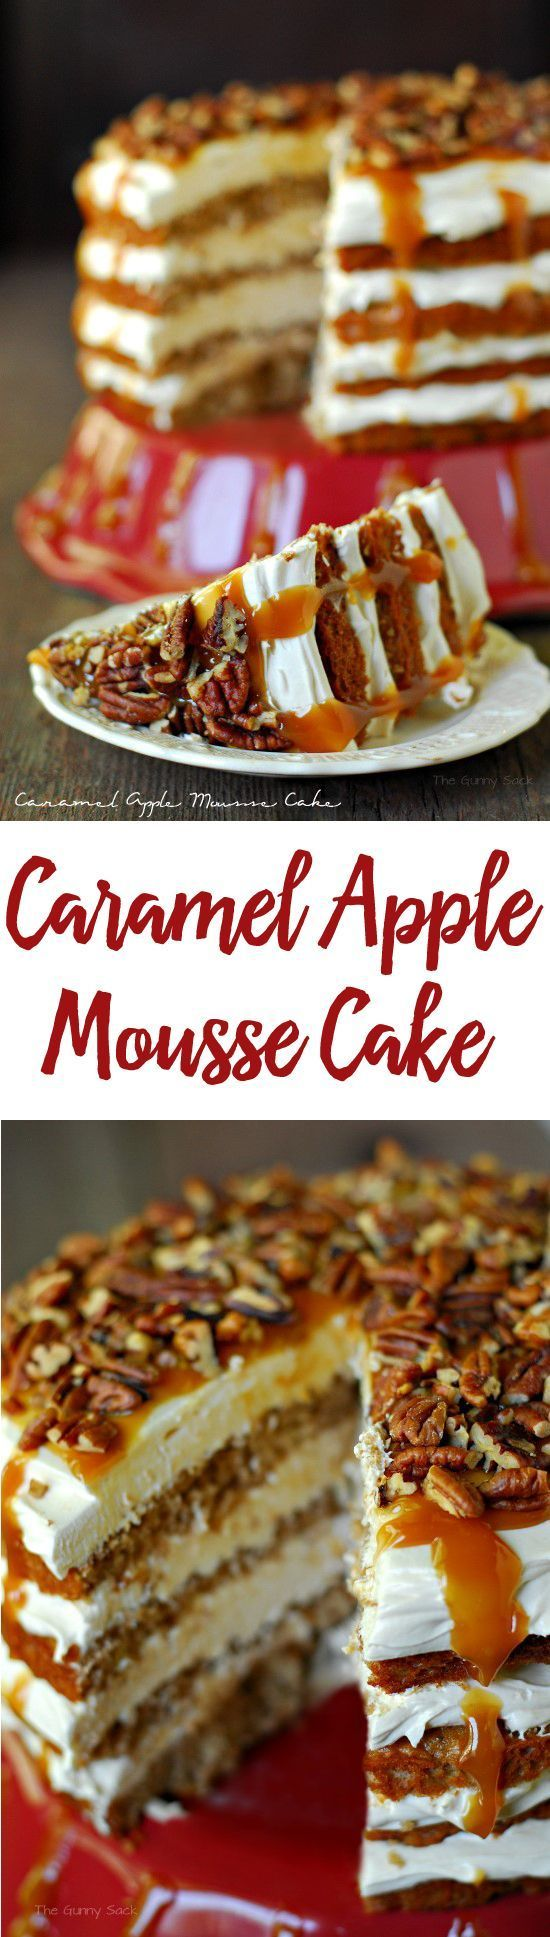 Caramel Apple Mousse Cake is layers of apple cake and creamy caramel mousse. Apple desserts are perfect for fall parties!